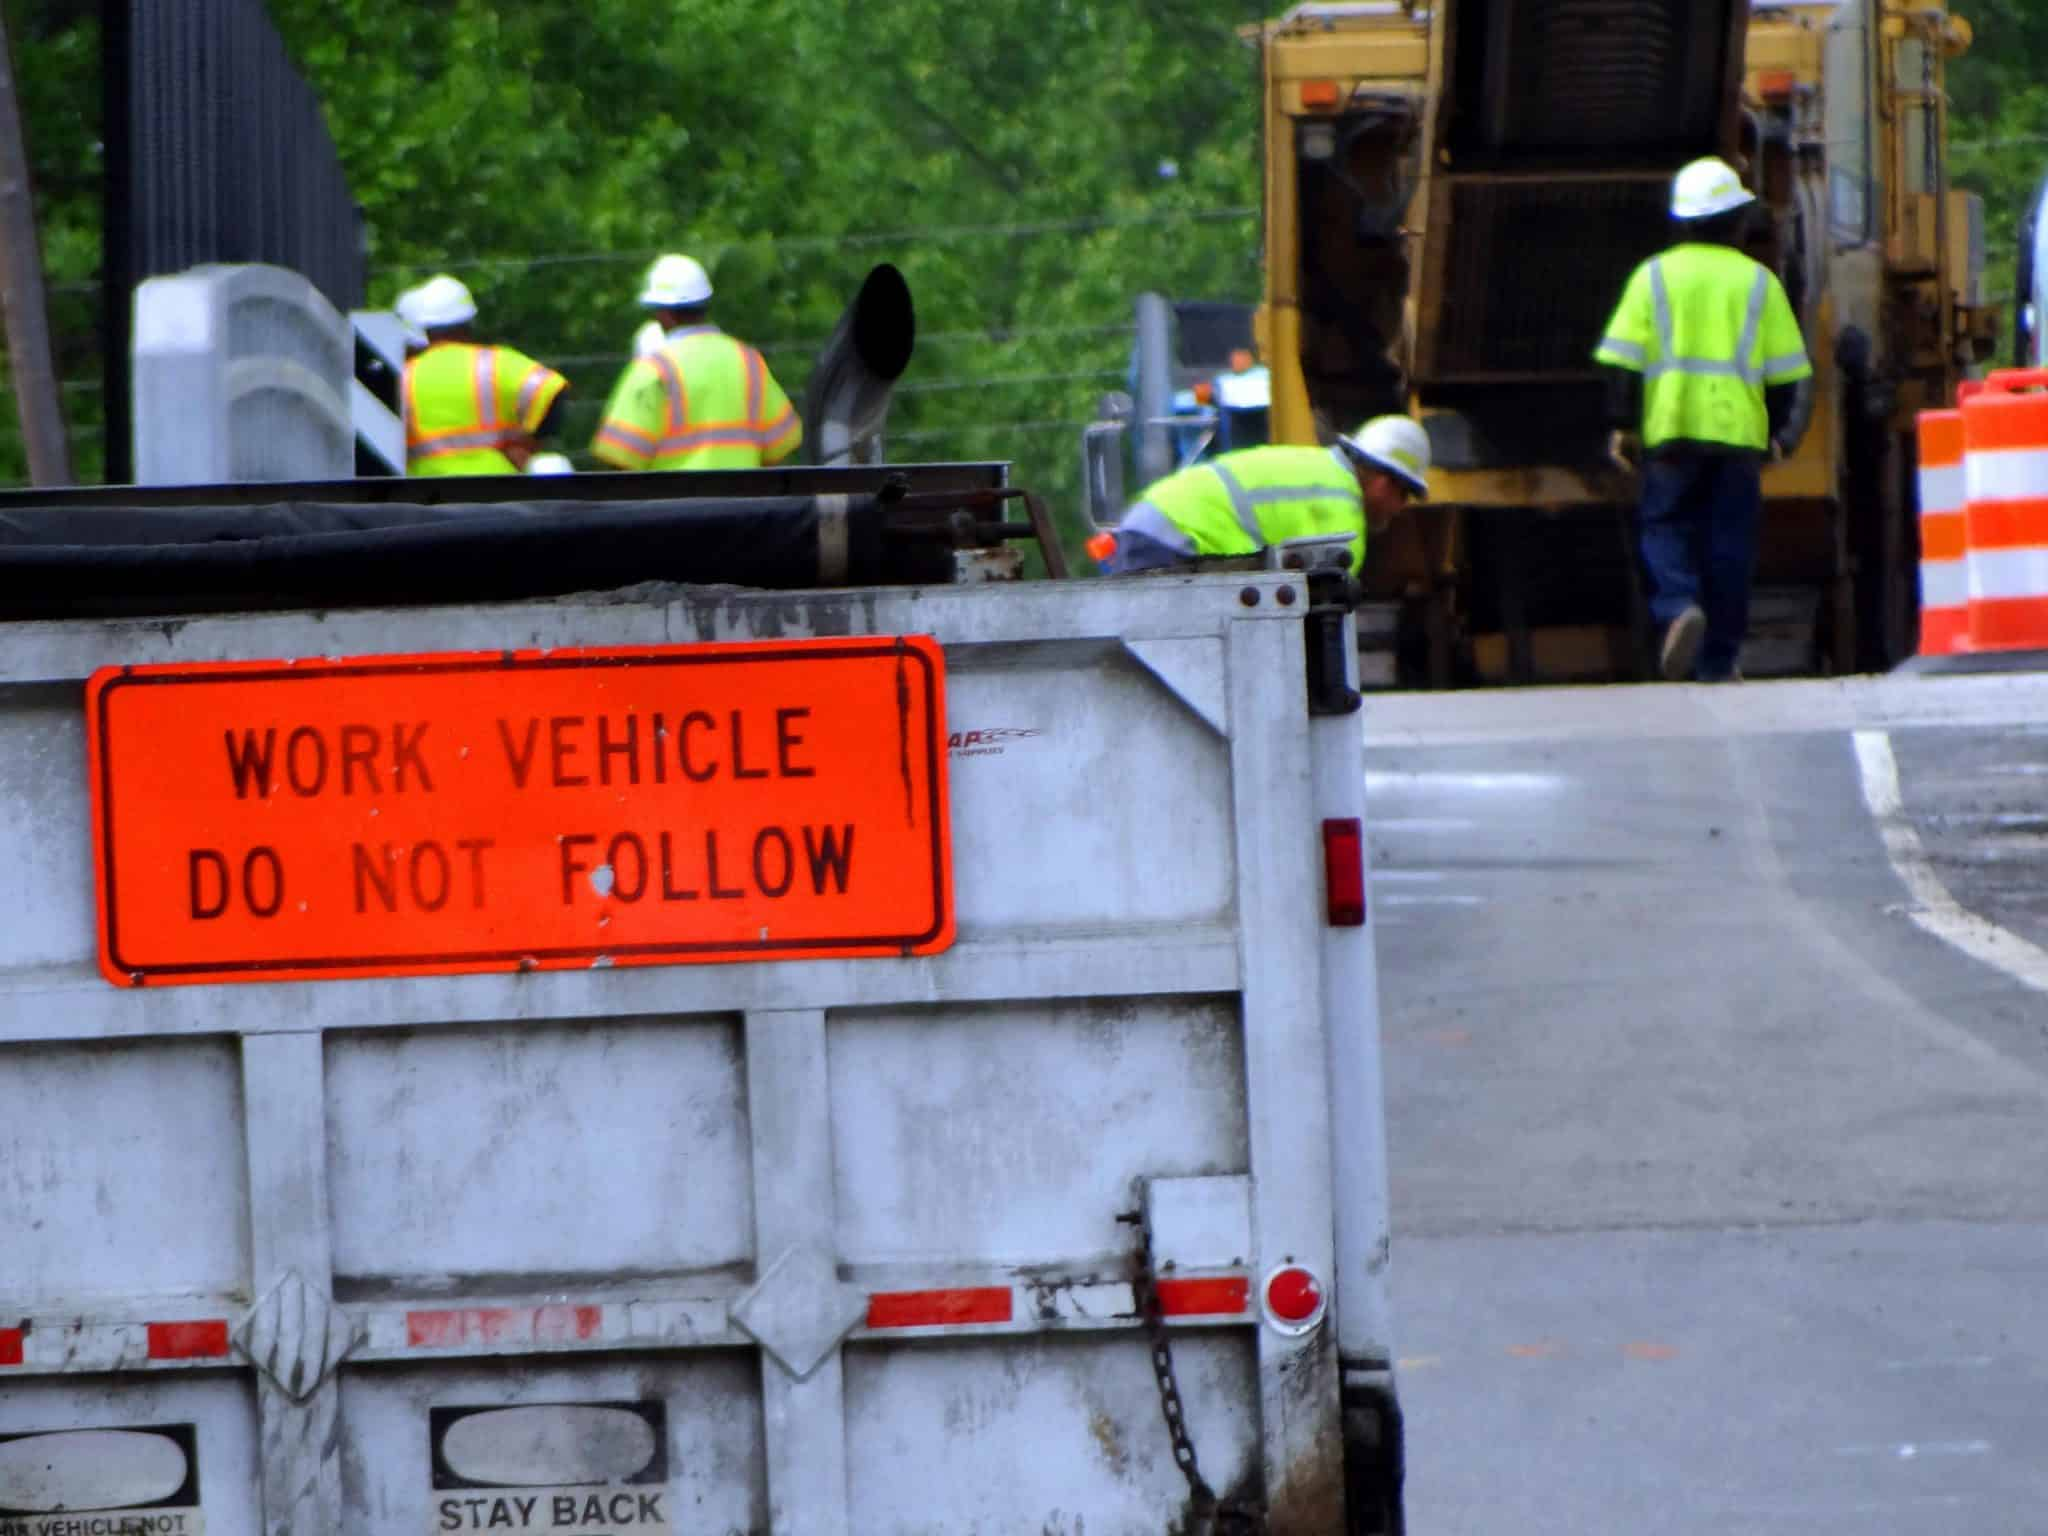 close up on a sign saying work vehicle do not follow with construction workers and equipment in the background